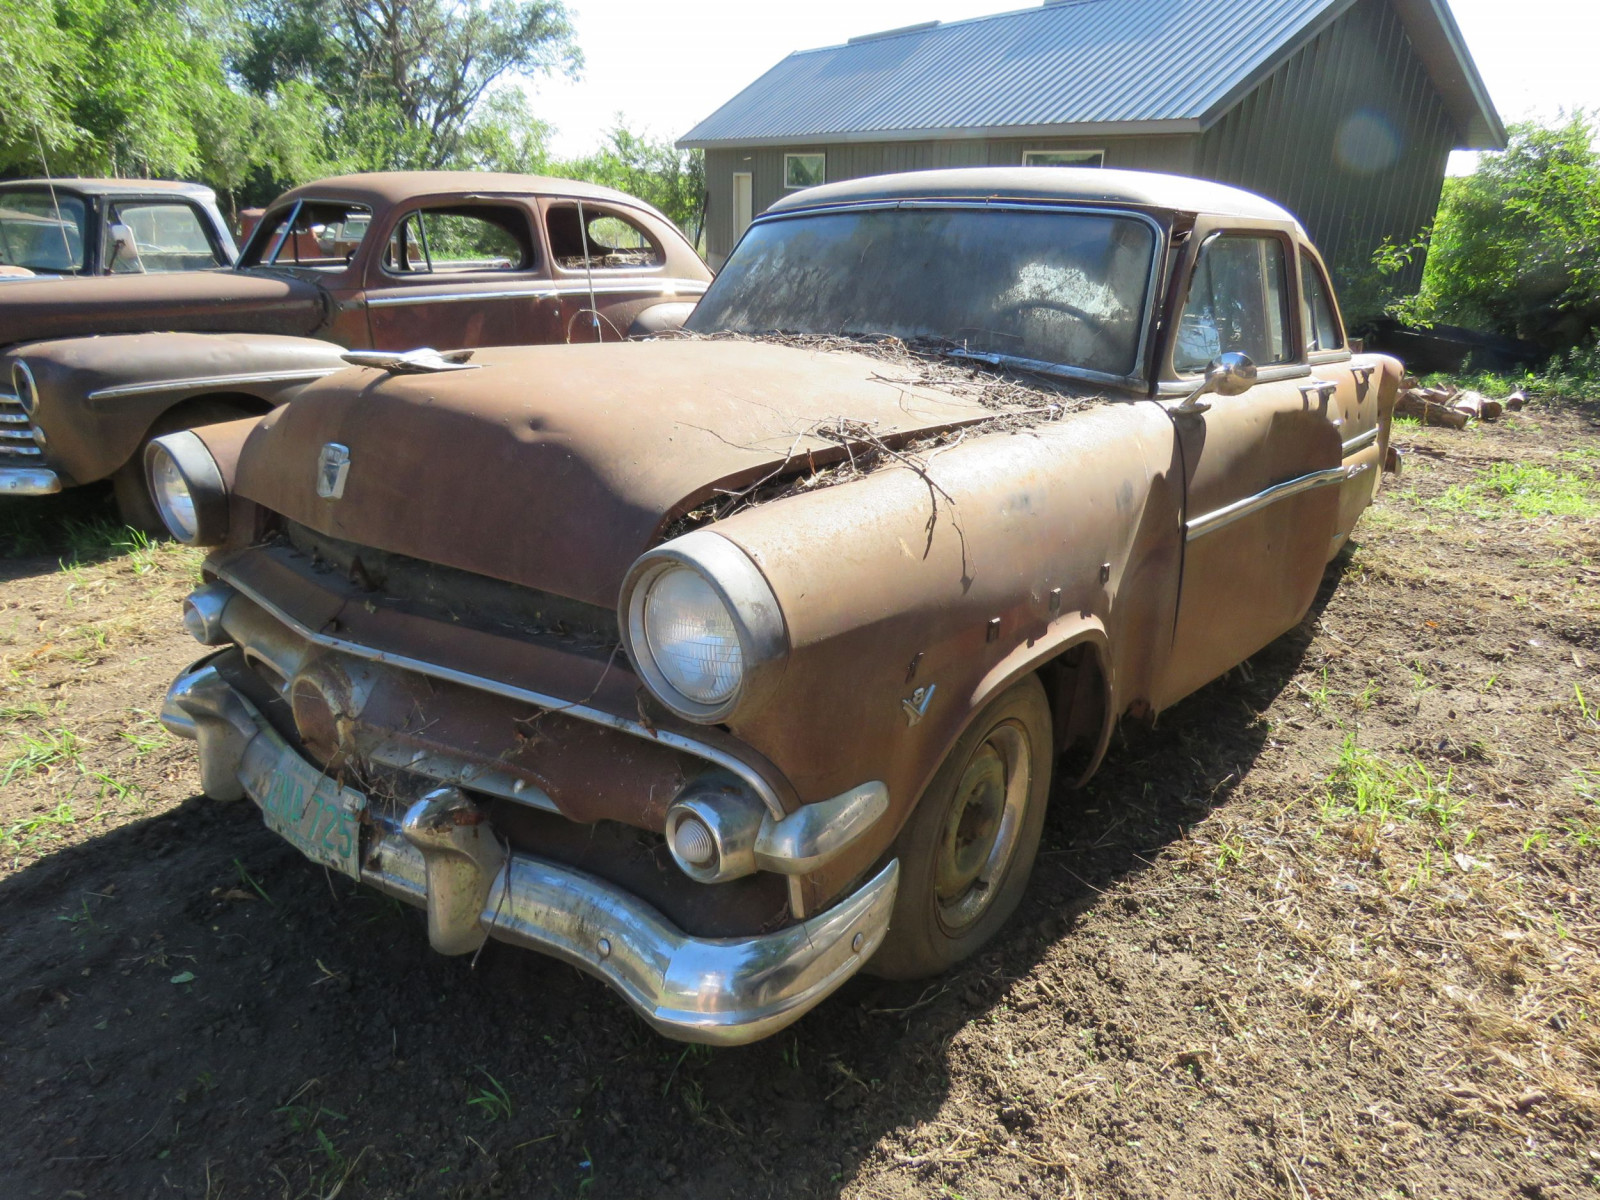 1954 Ford Customline 4dr Sedan for Project or Parts - Image 2